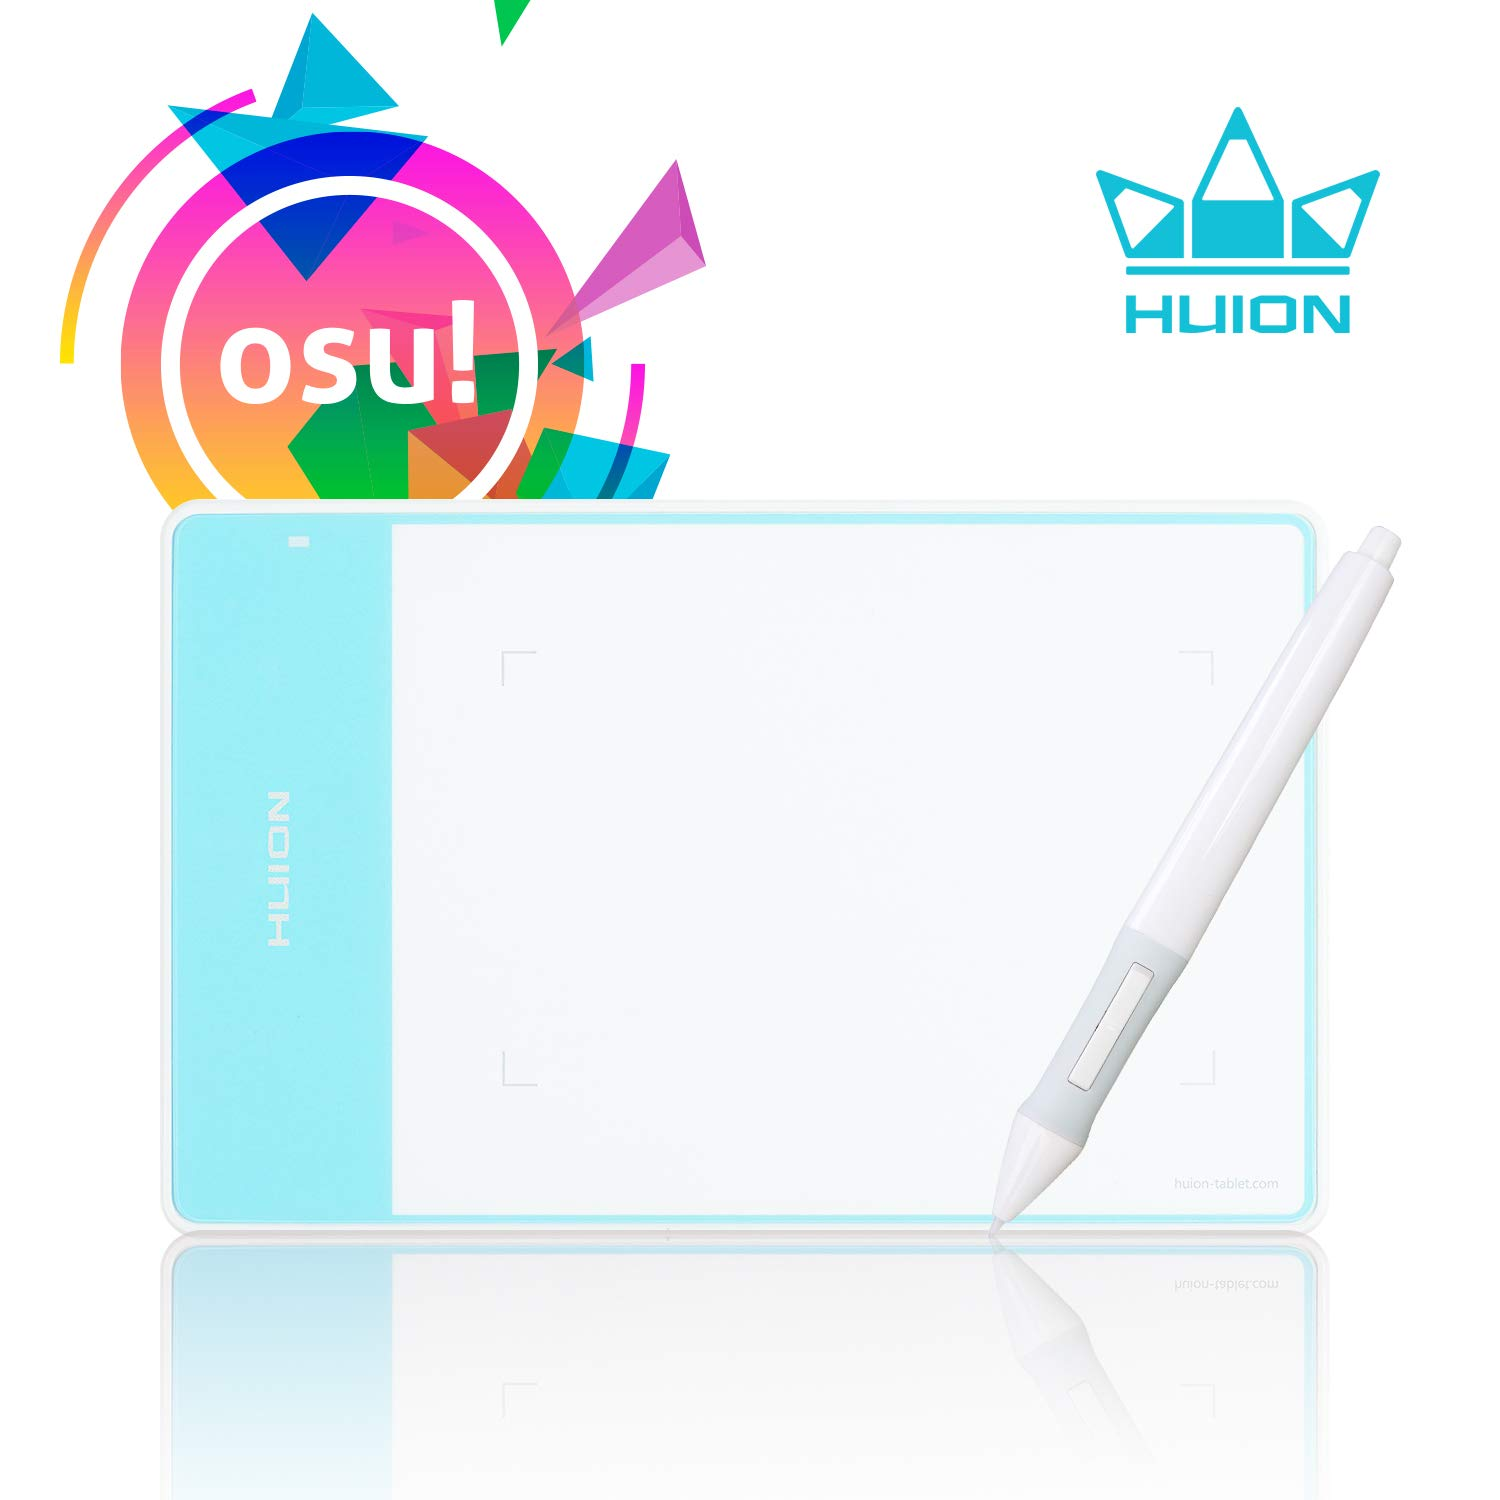 Huion 420 OSU Tablet 4 x 2 23 Inches Graphics Drawing Tablet - White